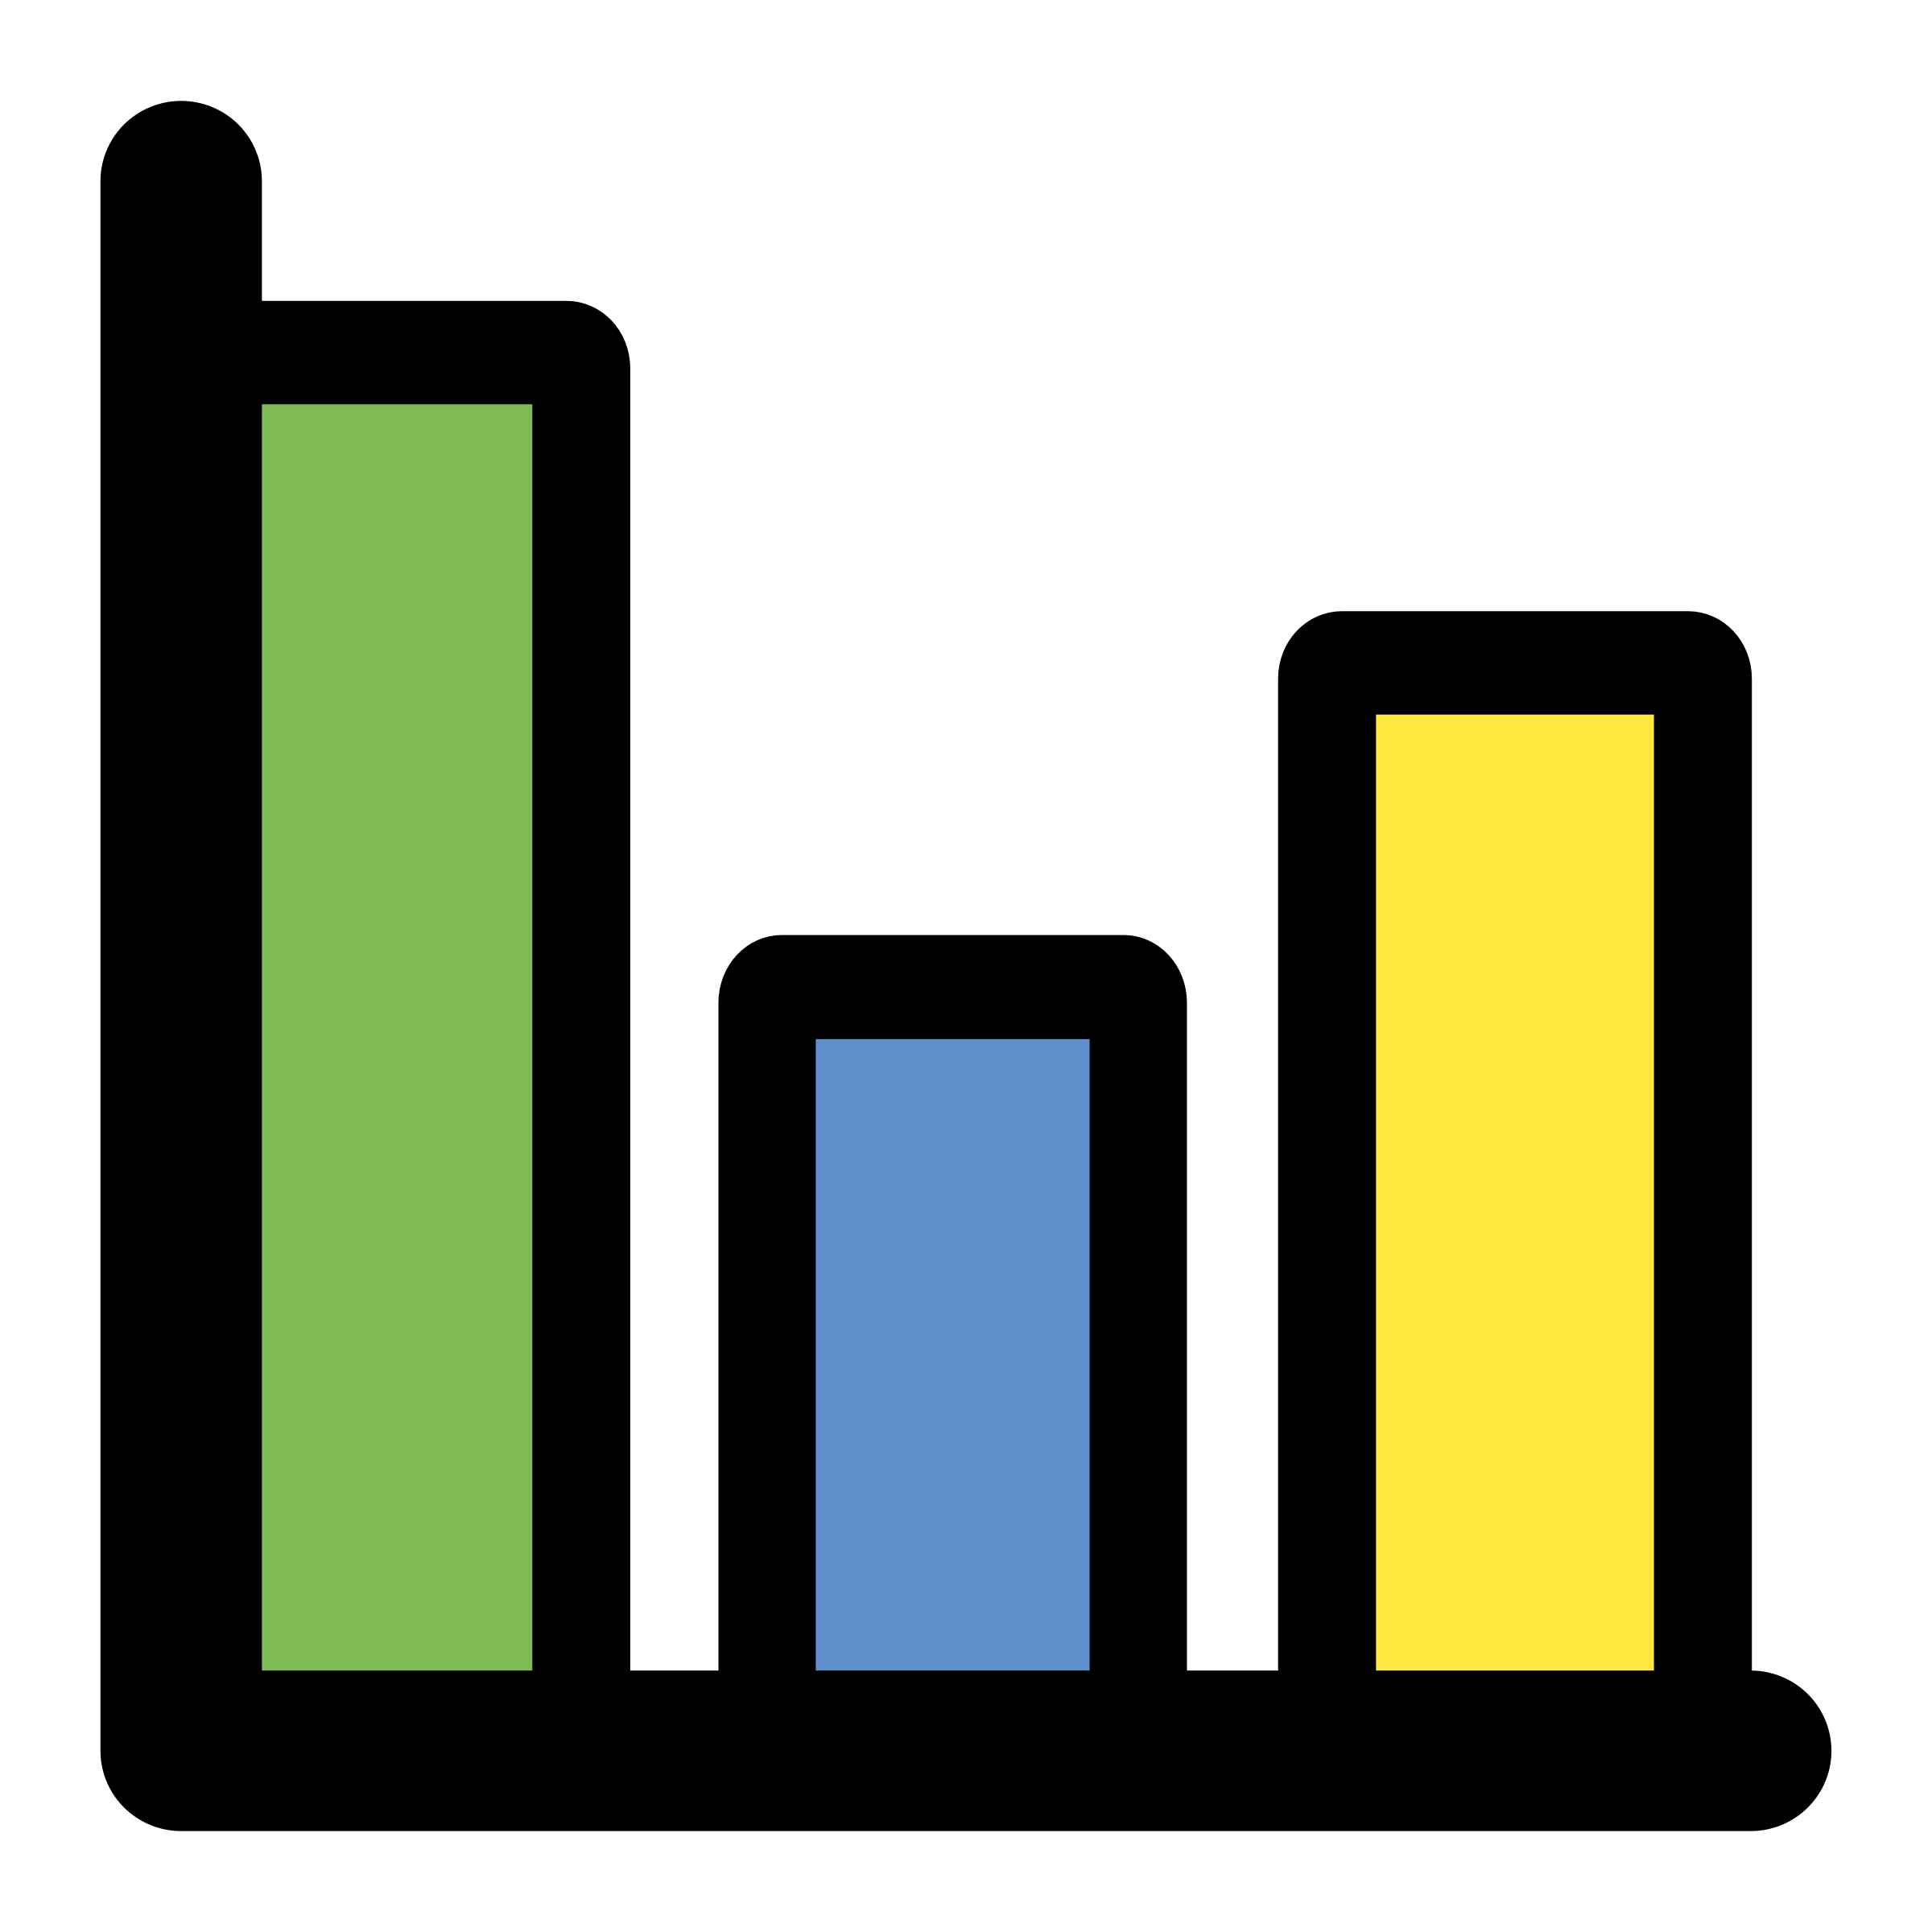 Data clipart primary data. Chart bar big image